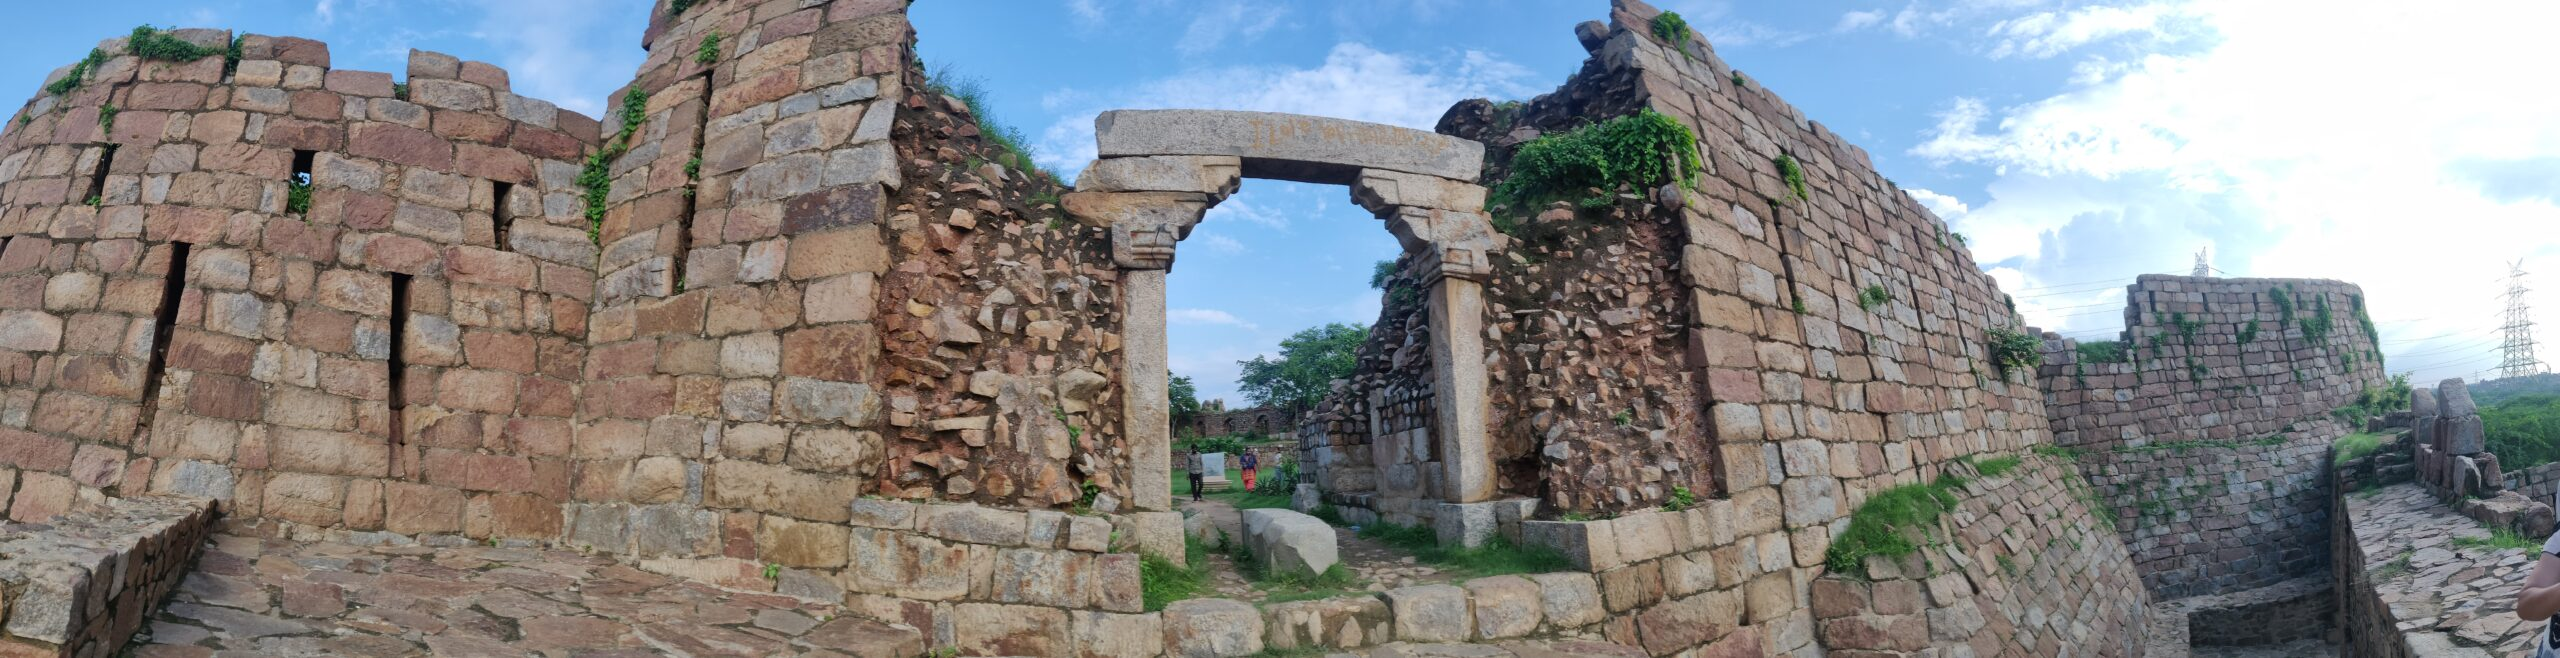 Adilabad Fort- Panoramic view of the entrance